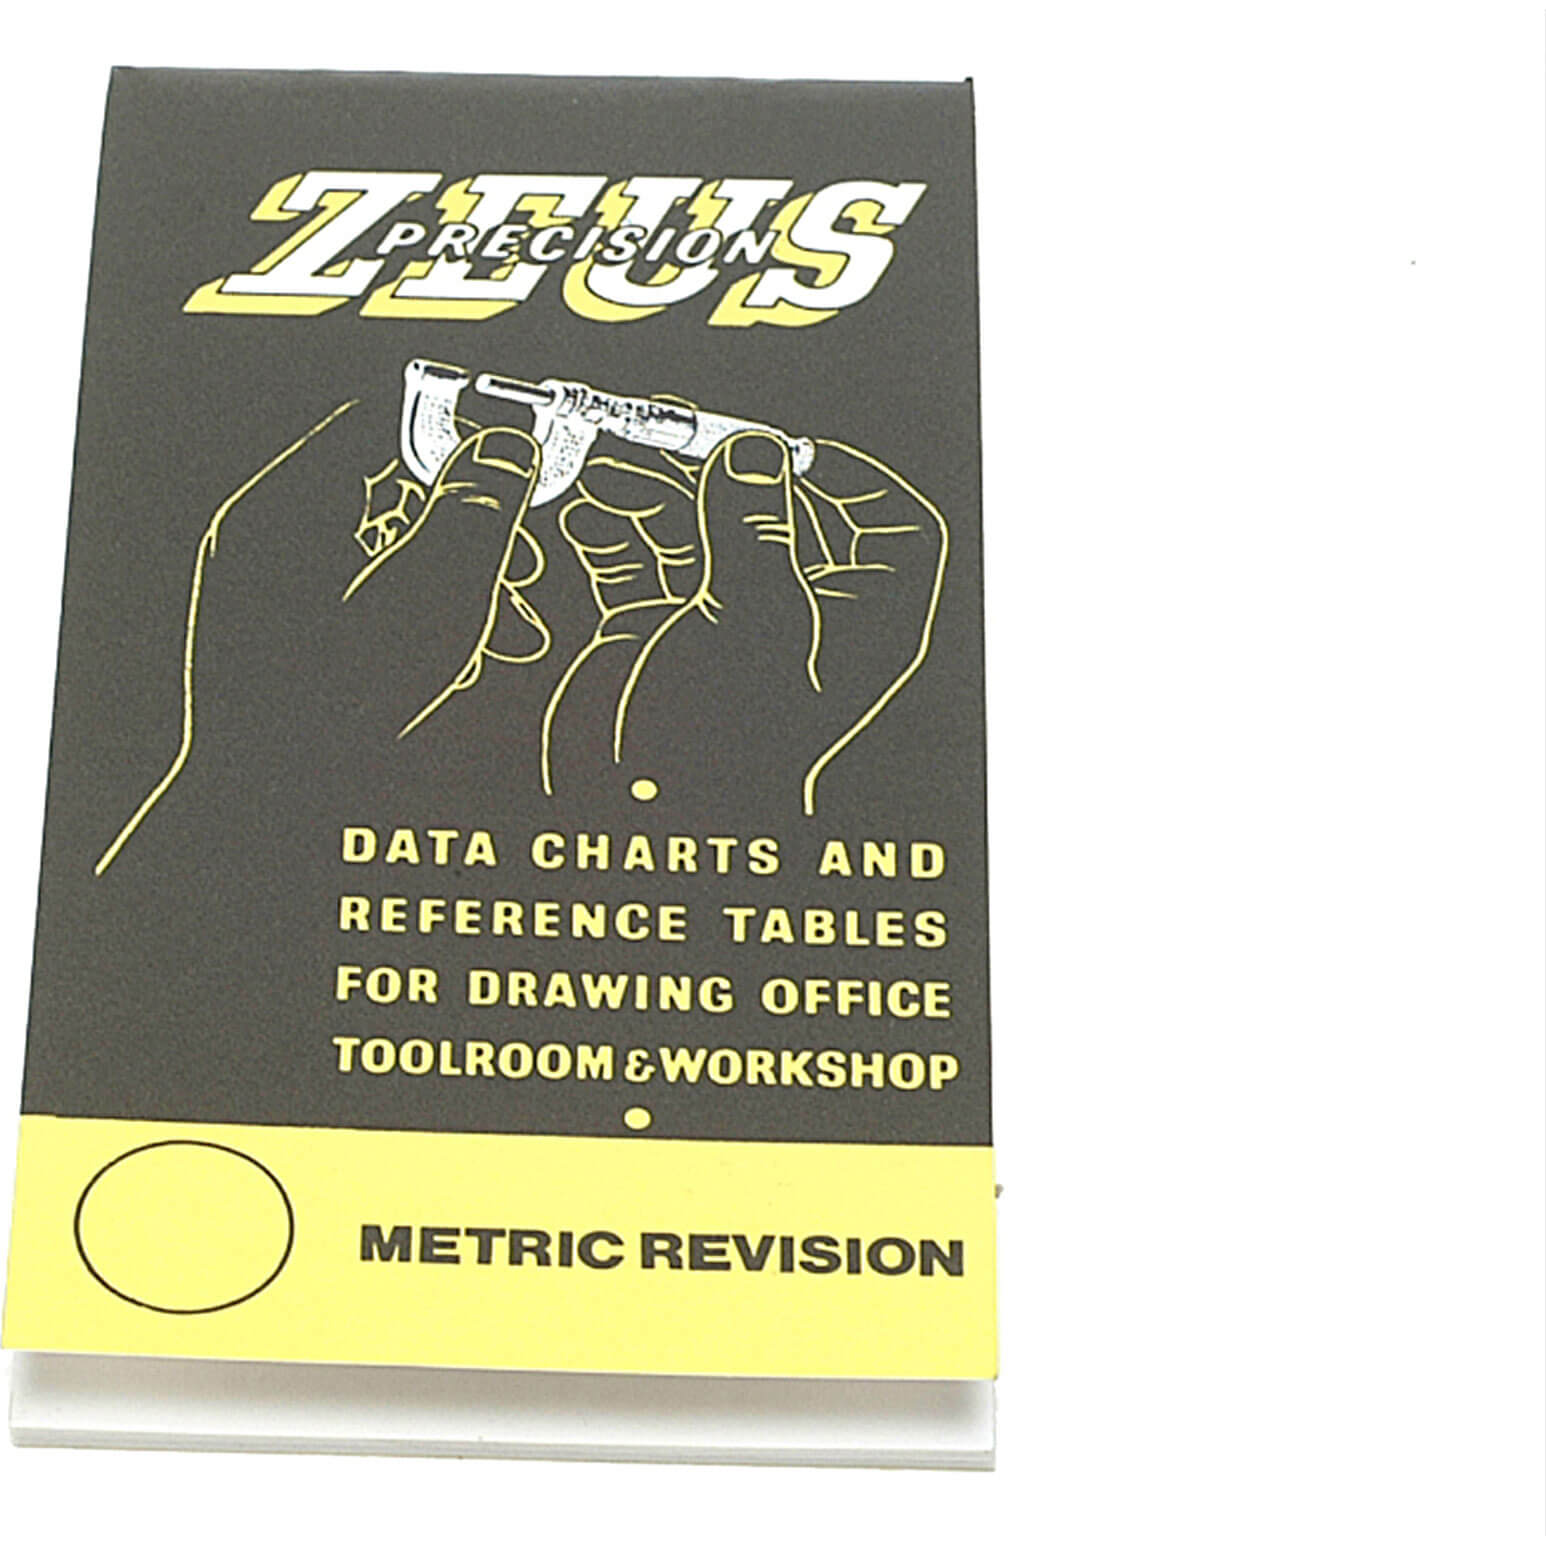 Image of Zeus Precision Data Charts & Reference Tables Book